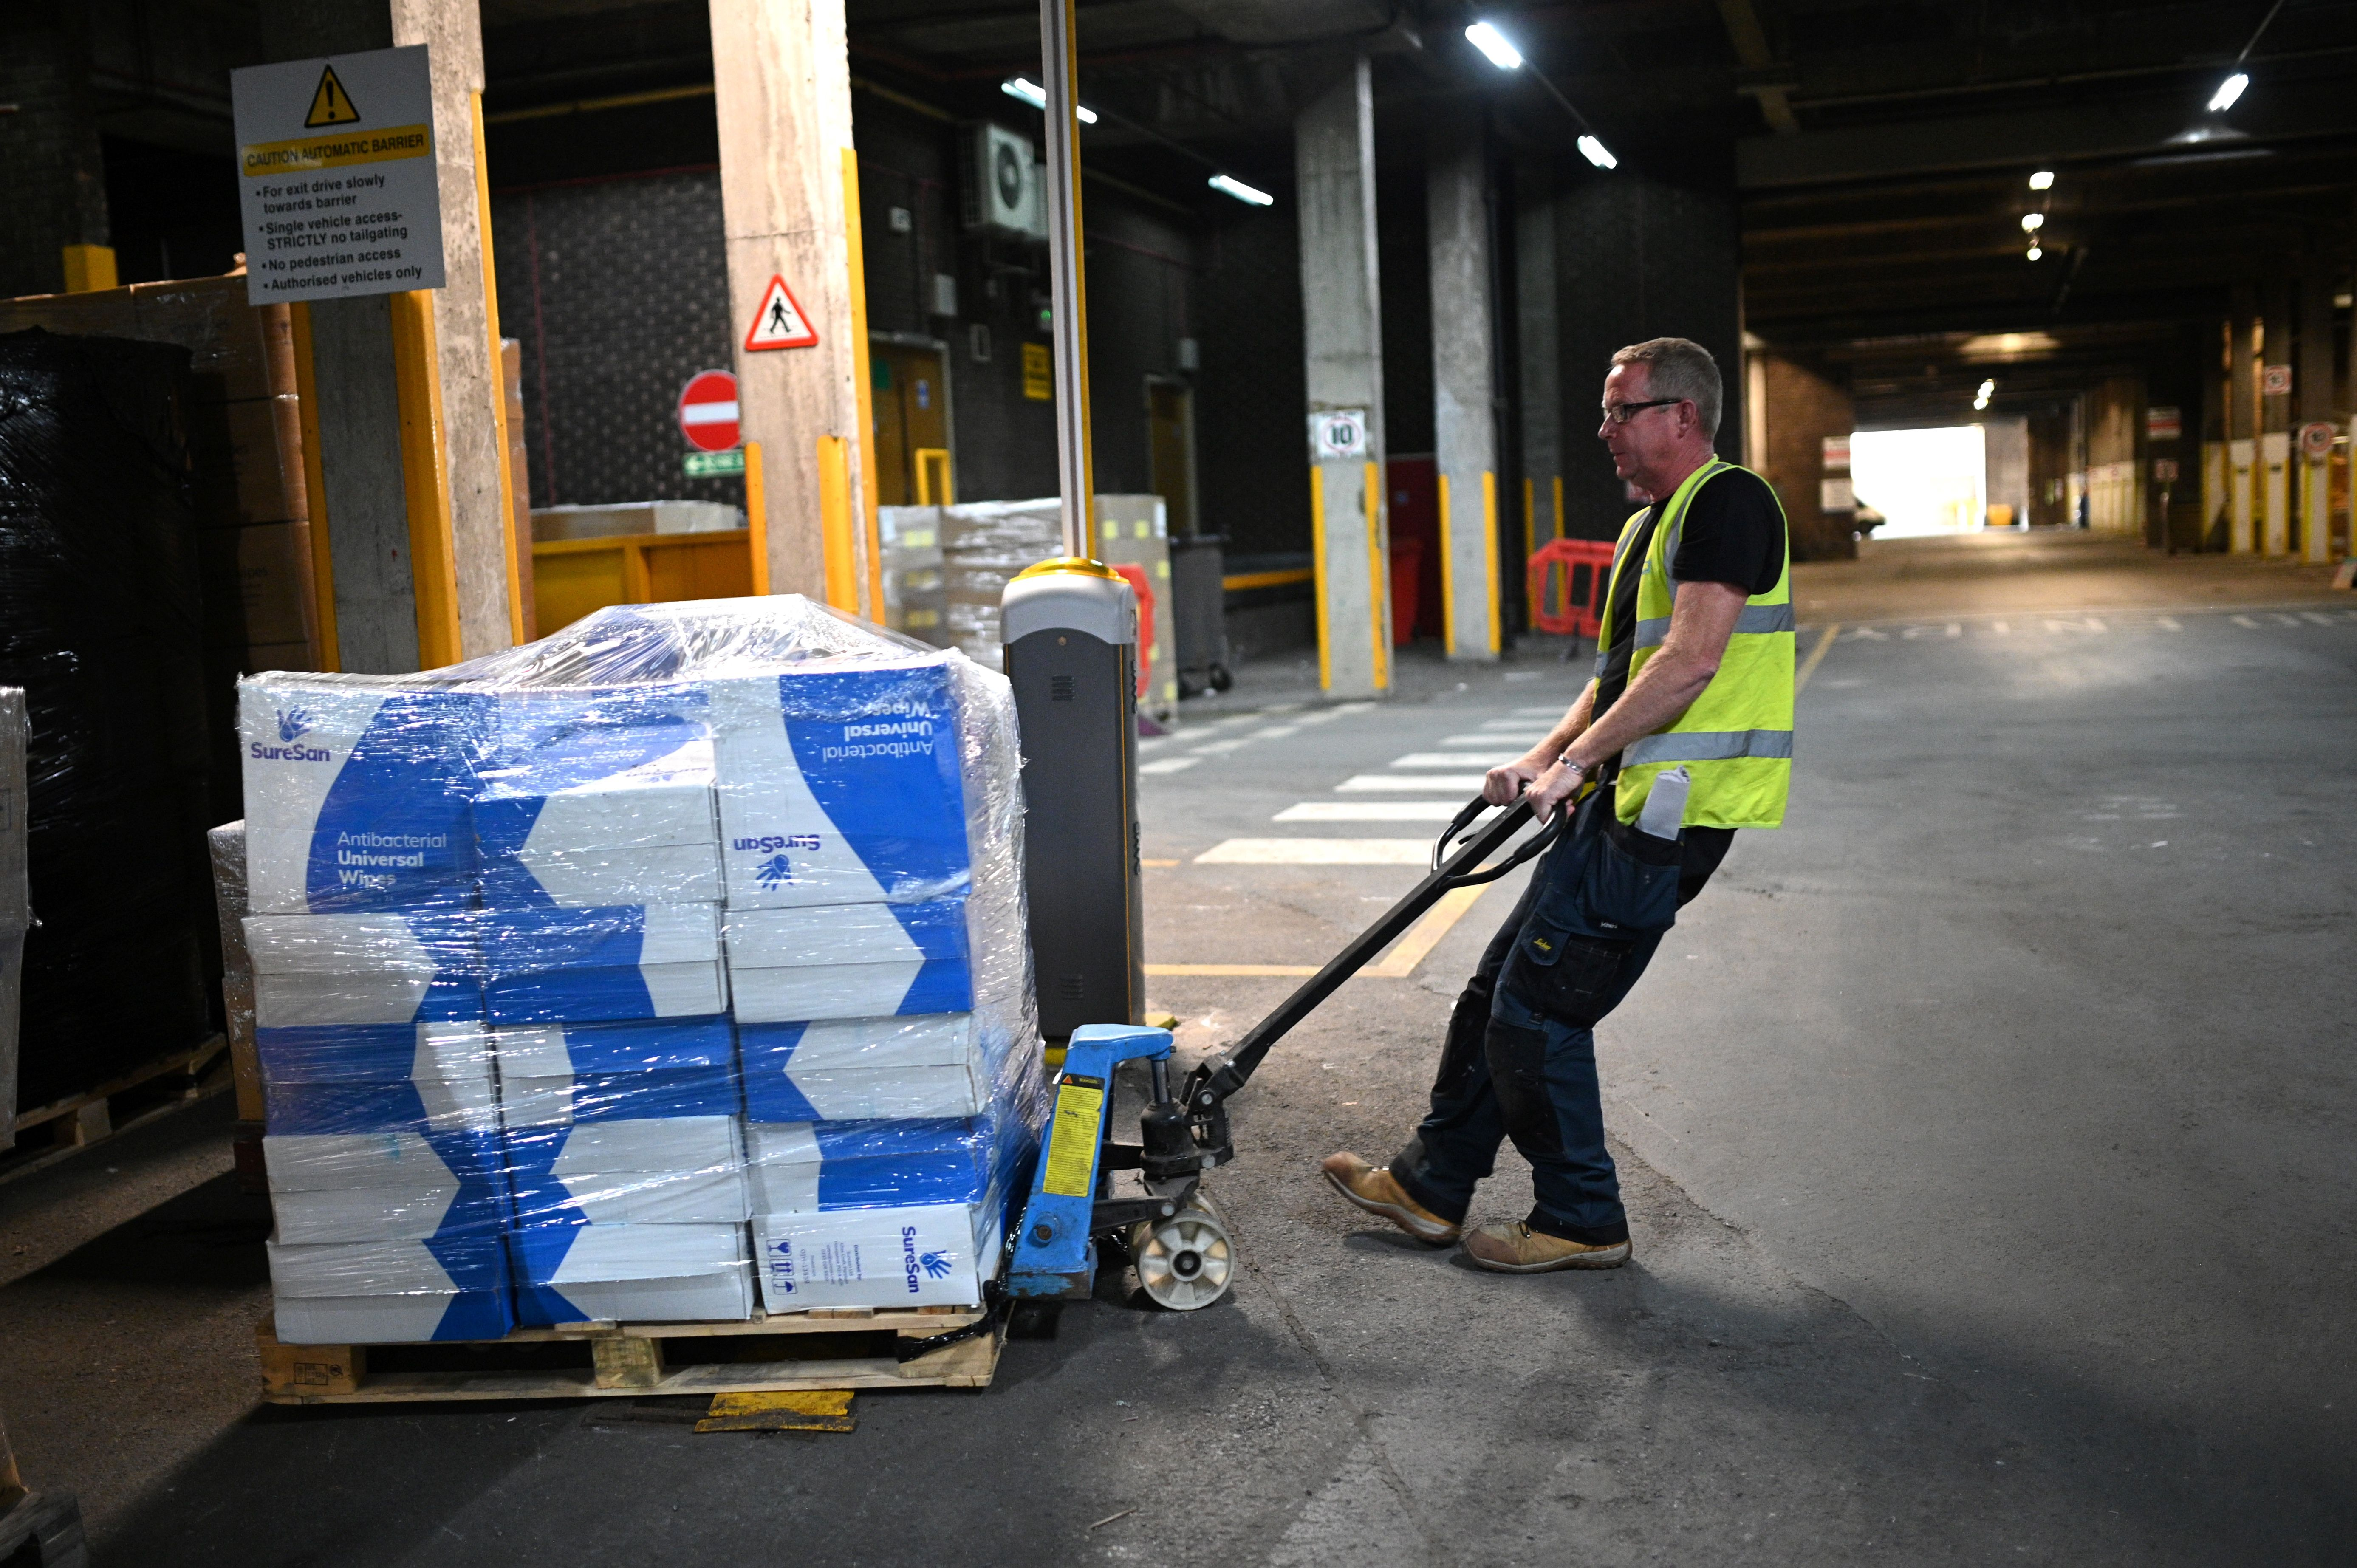 Kirklees council employees prepares orders of Personal Protective Equipment (PPE) at its hub where they will be dispatched to various council run settings in Huddersfield, northwest England on May 28, 2020. (Photo by Oli SCARFF / AFP) (Photo by OLI SCARFF/AFP via Getty Images)